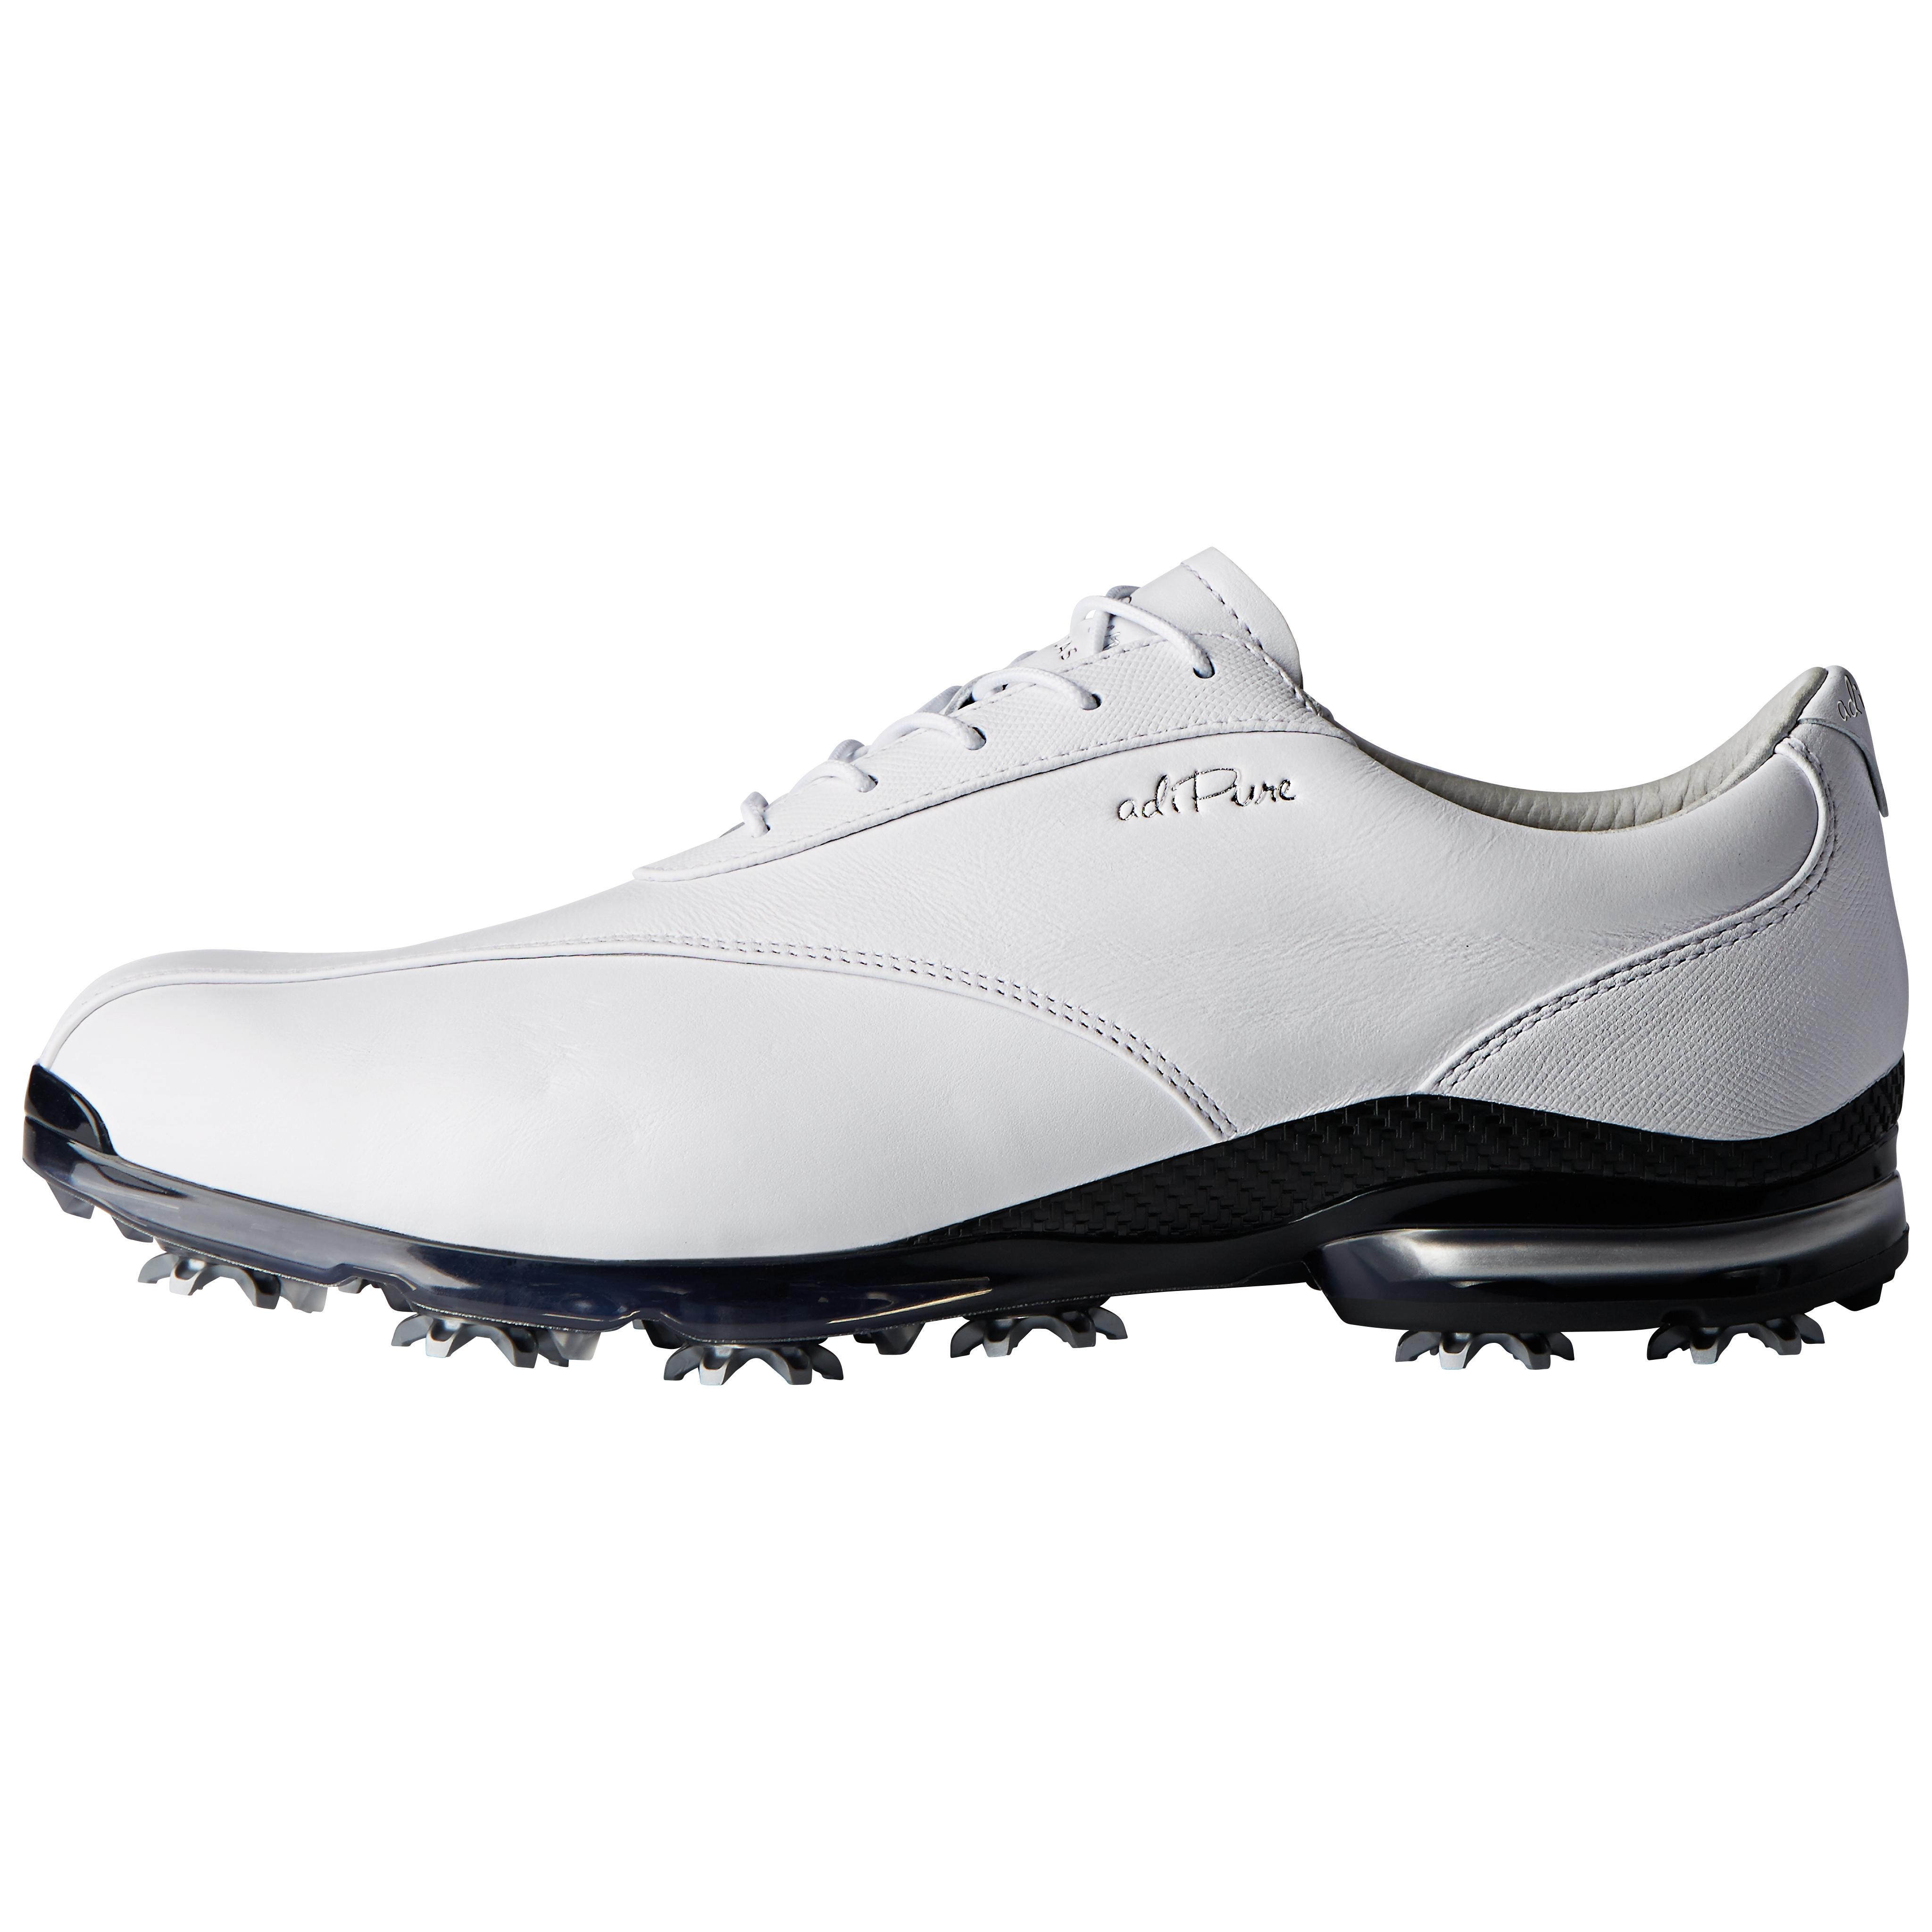 Adidas Adipure Classic Golf Shoes Famous Brand White Silver Metallic AD2565